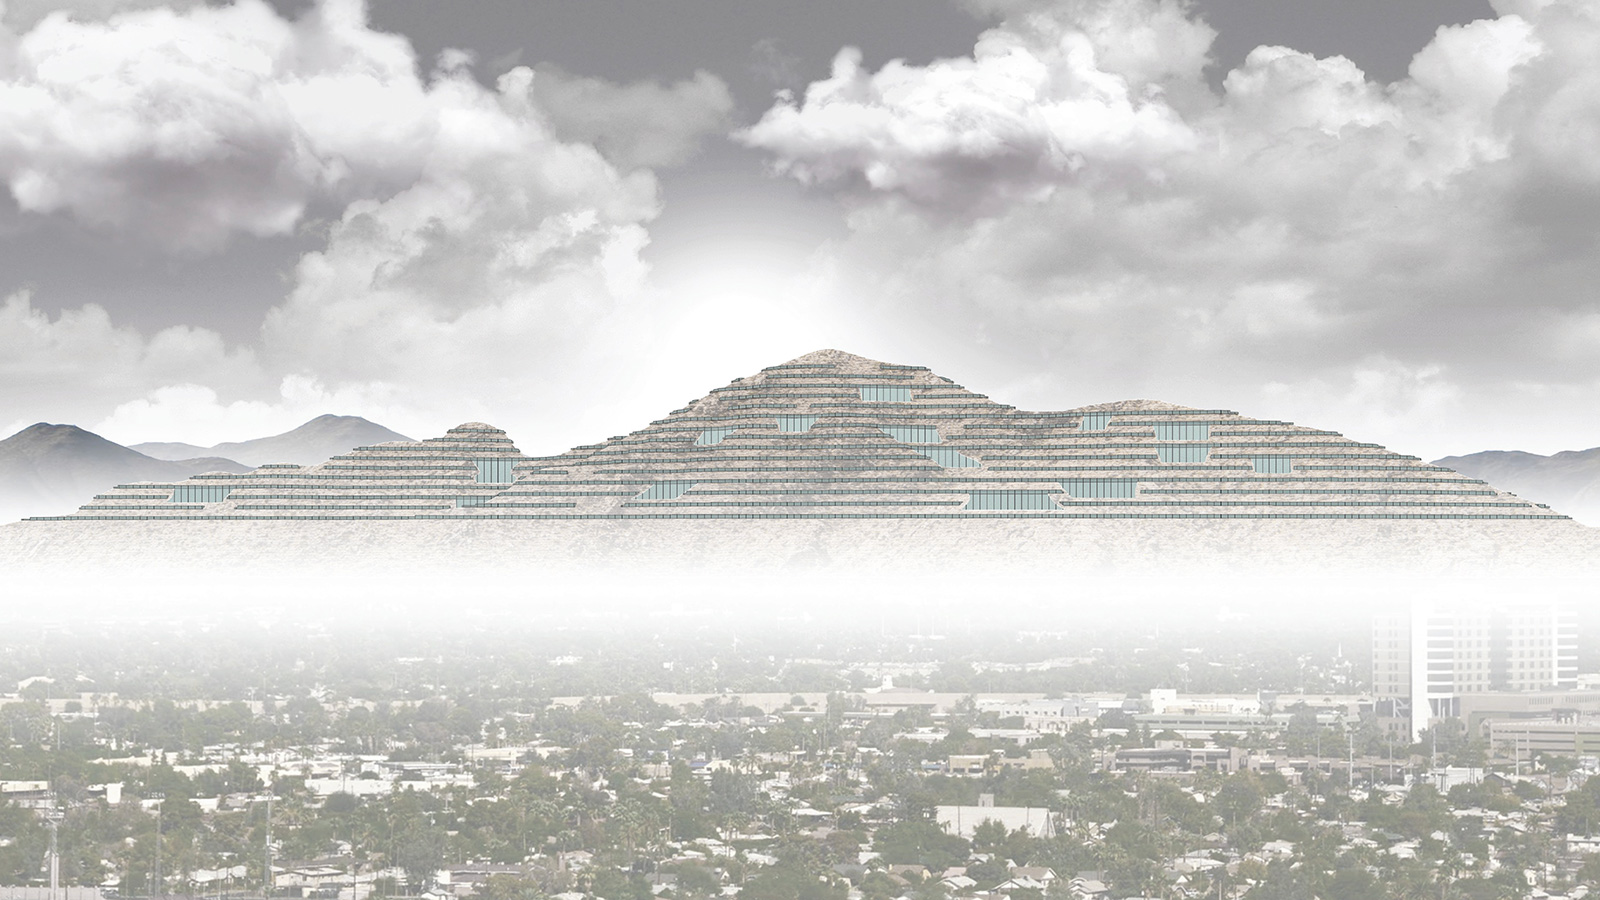 Elevation perspective of Camelback Mountain in Phoenix lined with new layers of housing by student Stephen Adrian